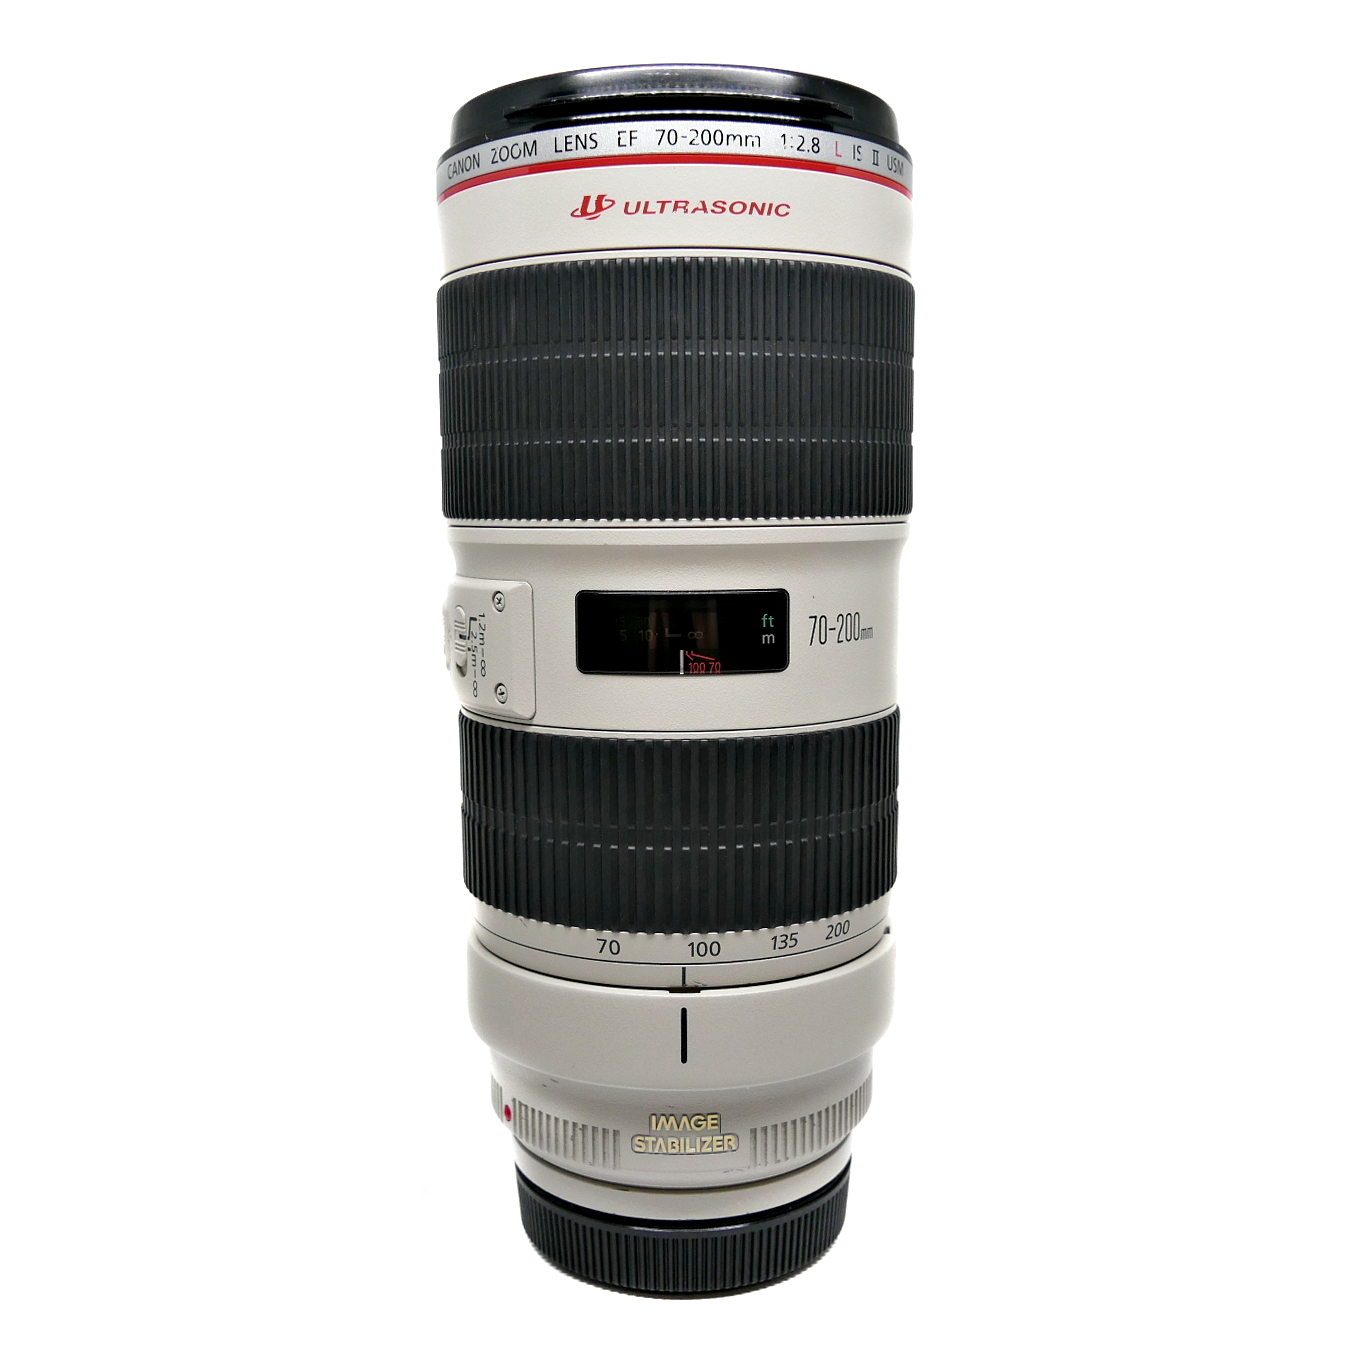 Canon EF 70-200mm f/2.8 L IS II USM (käytetty)